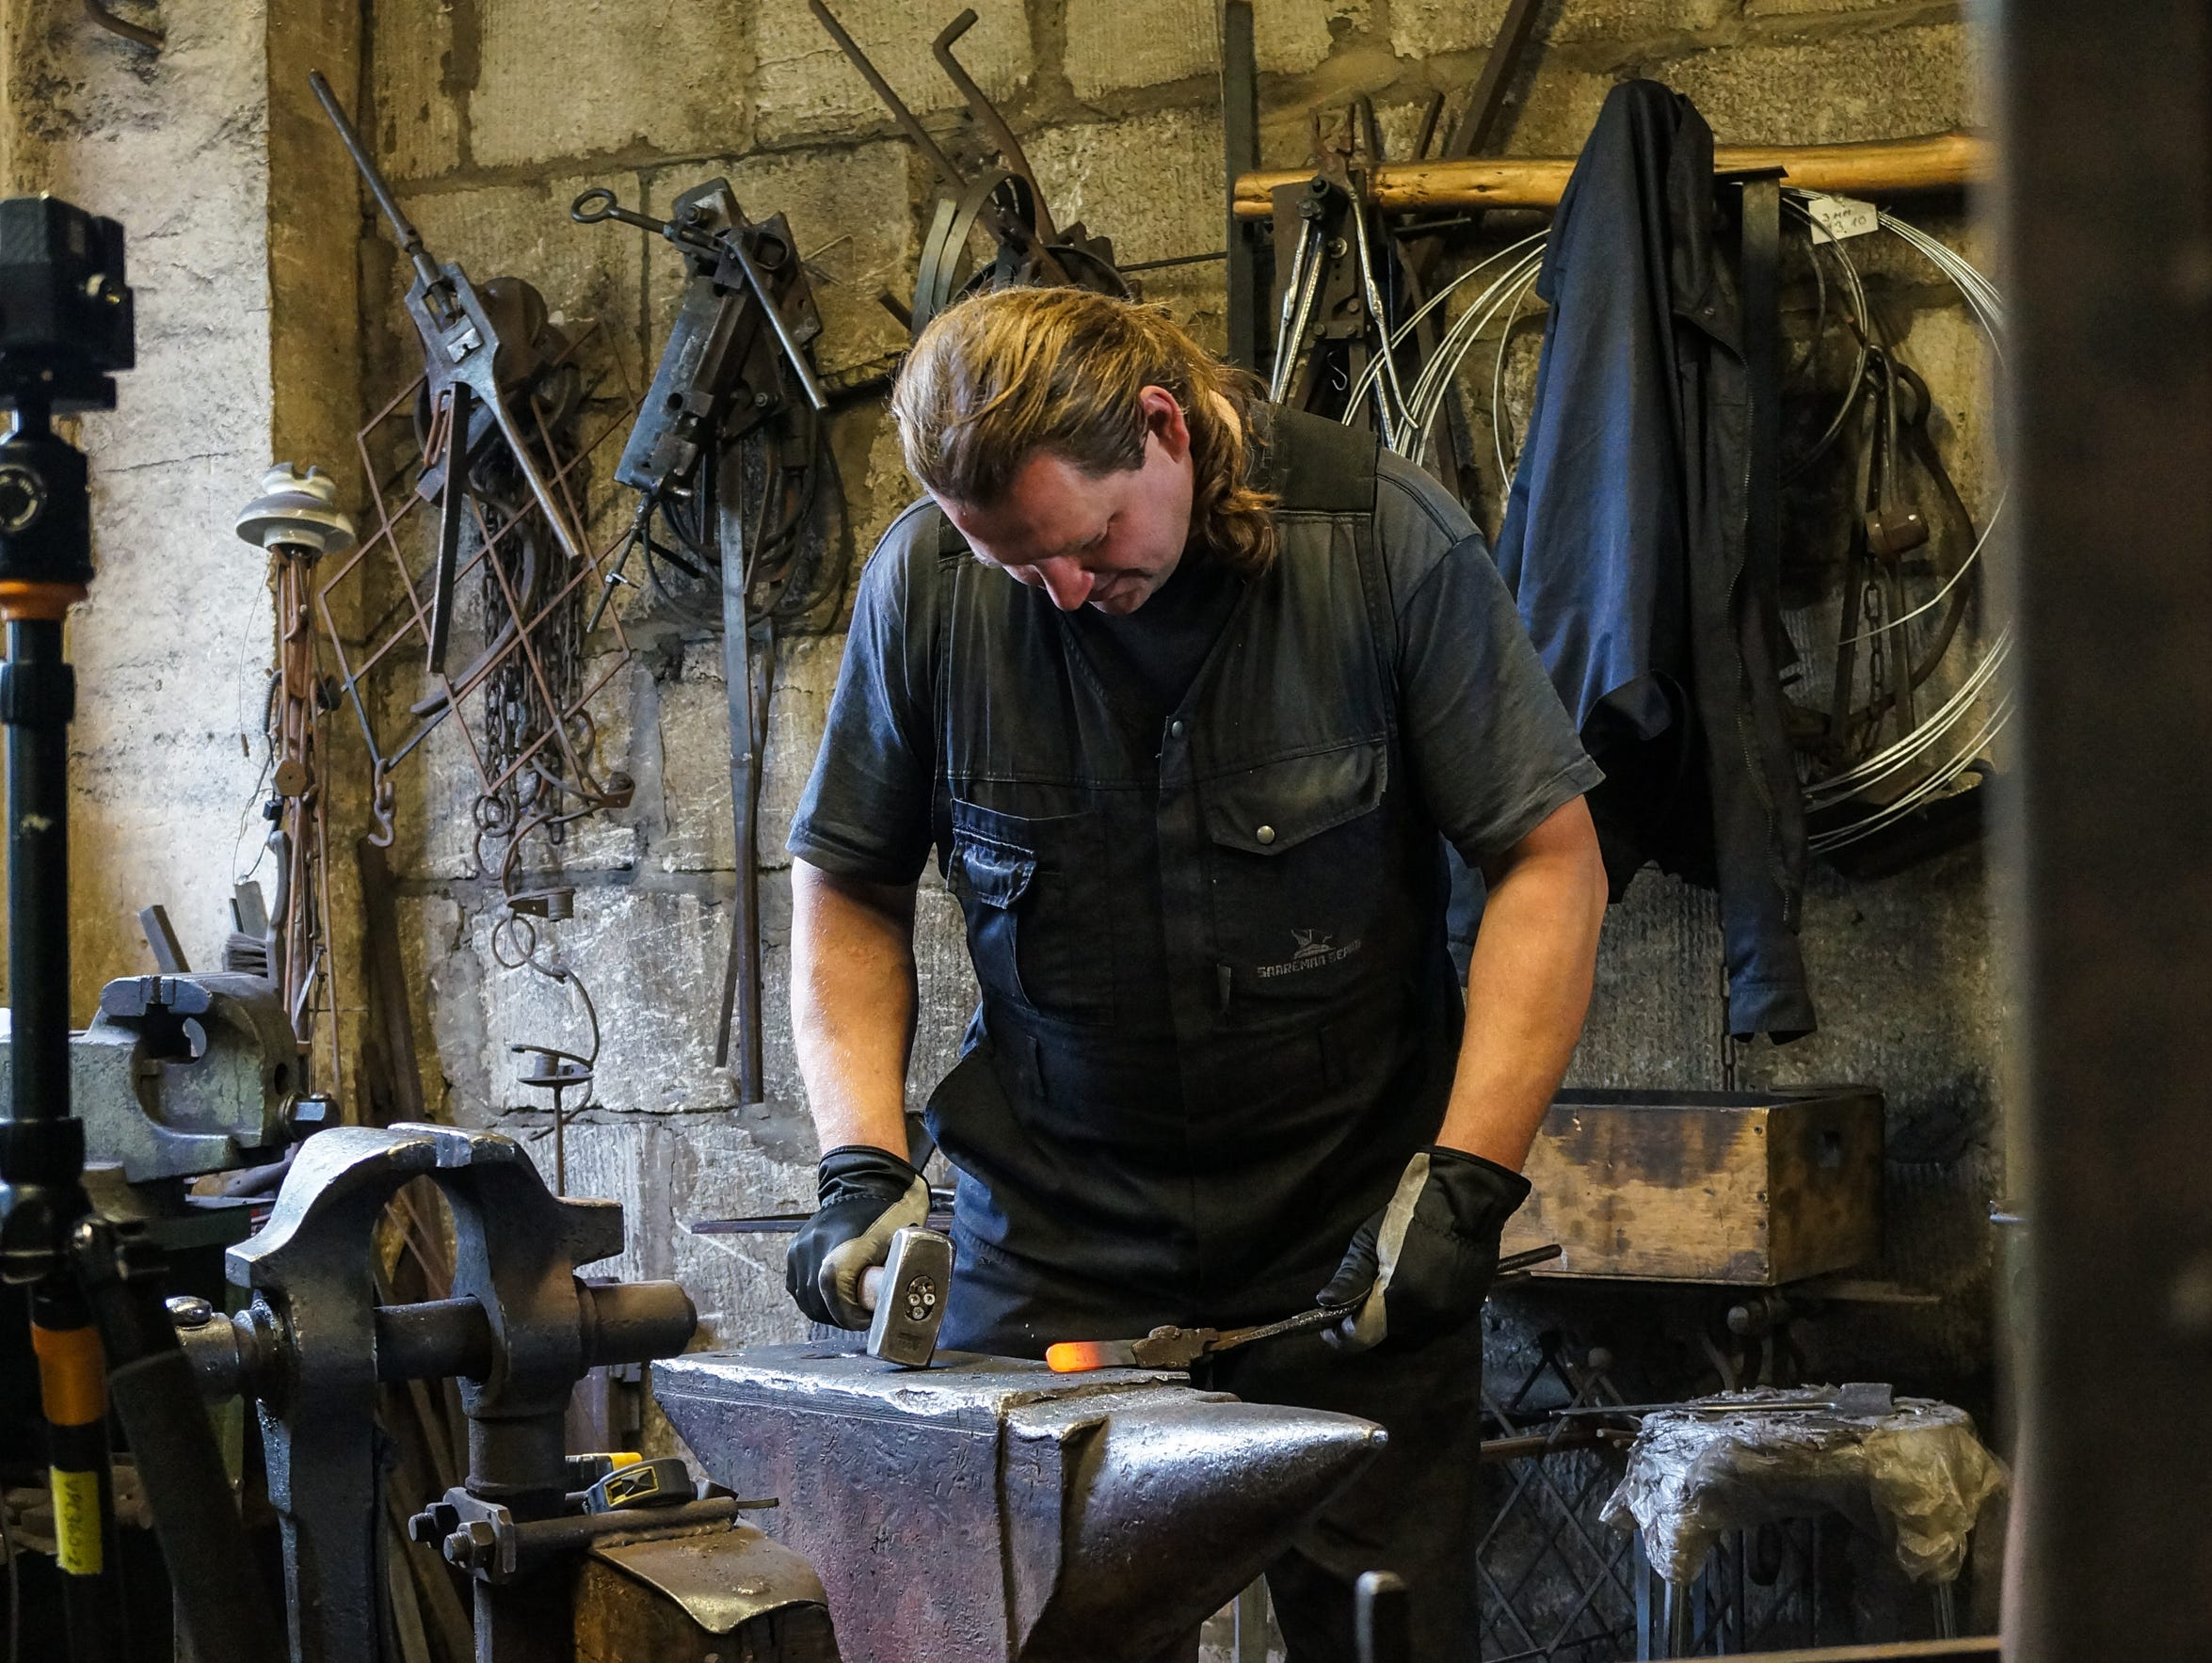 The team of blacksmiths at Saaremaa Sepad do their